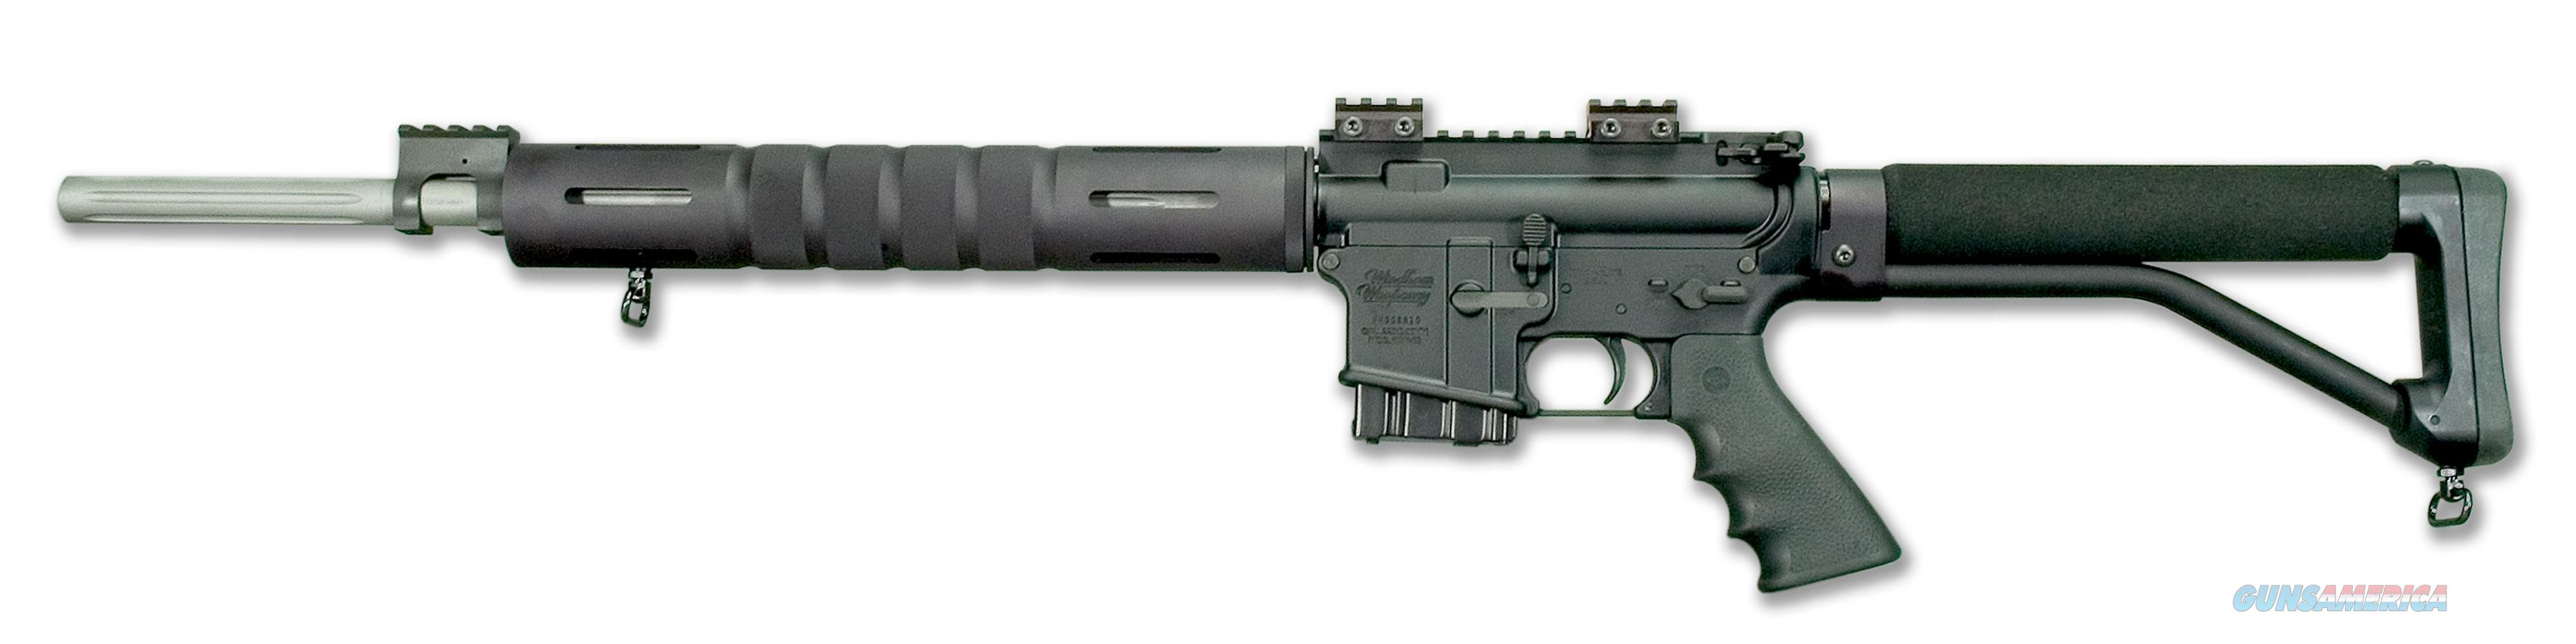 Windham Weaponry Vex-SS .223  Guns > Rifles > Windham Weaponry Rifles